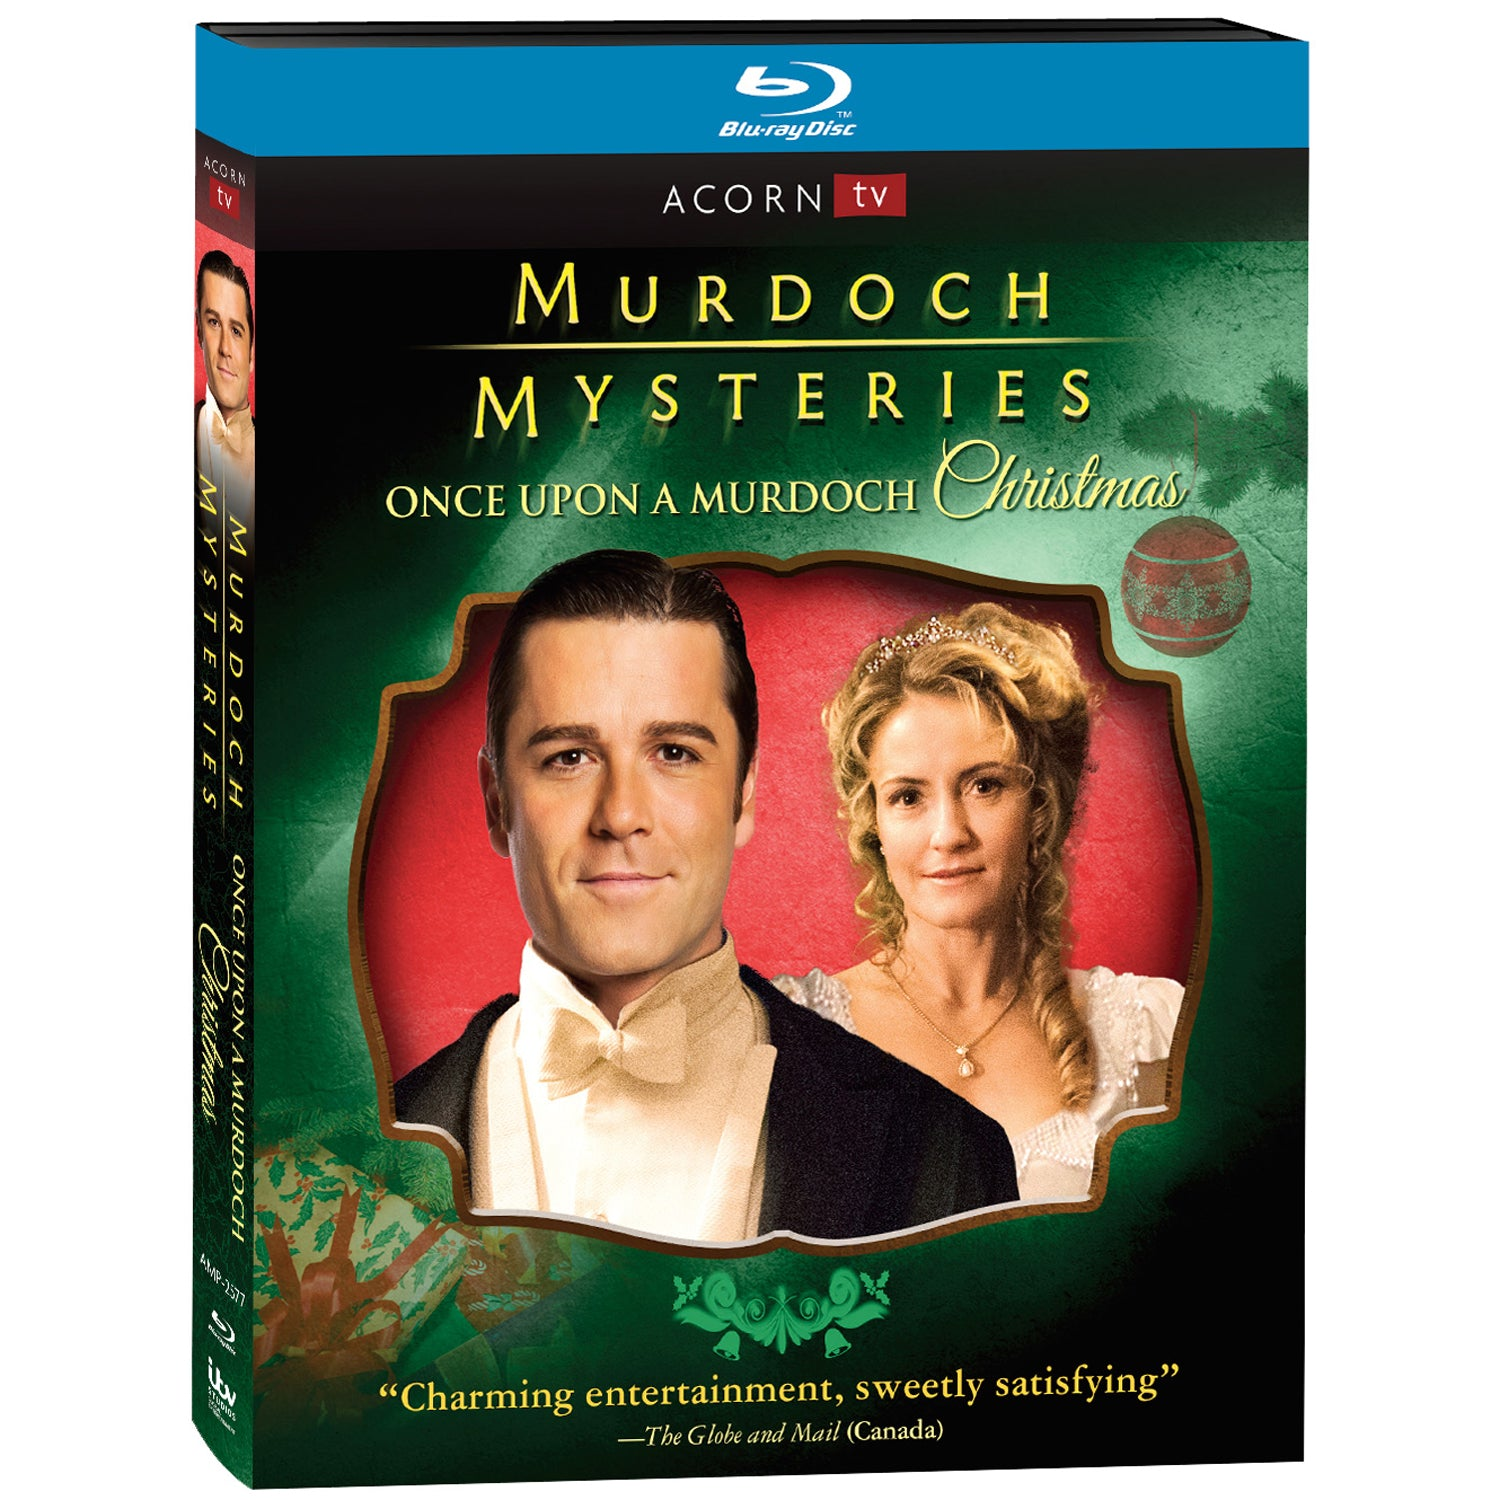 Murdoch Mysteries: Once Upon a Murdoch Christmas (Blu-ray)